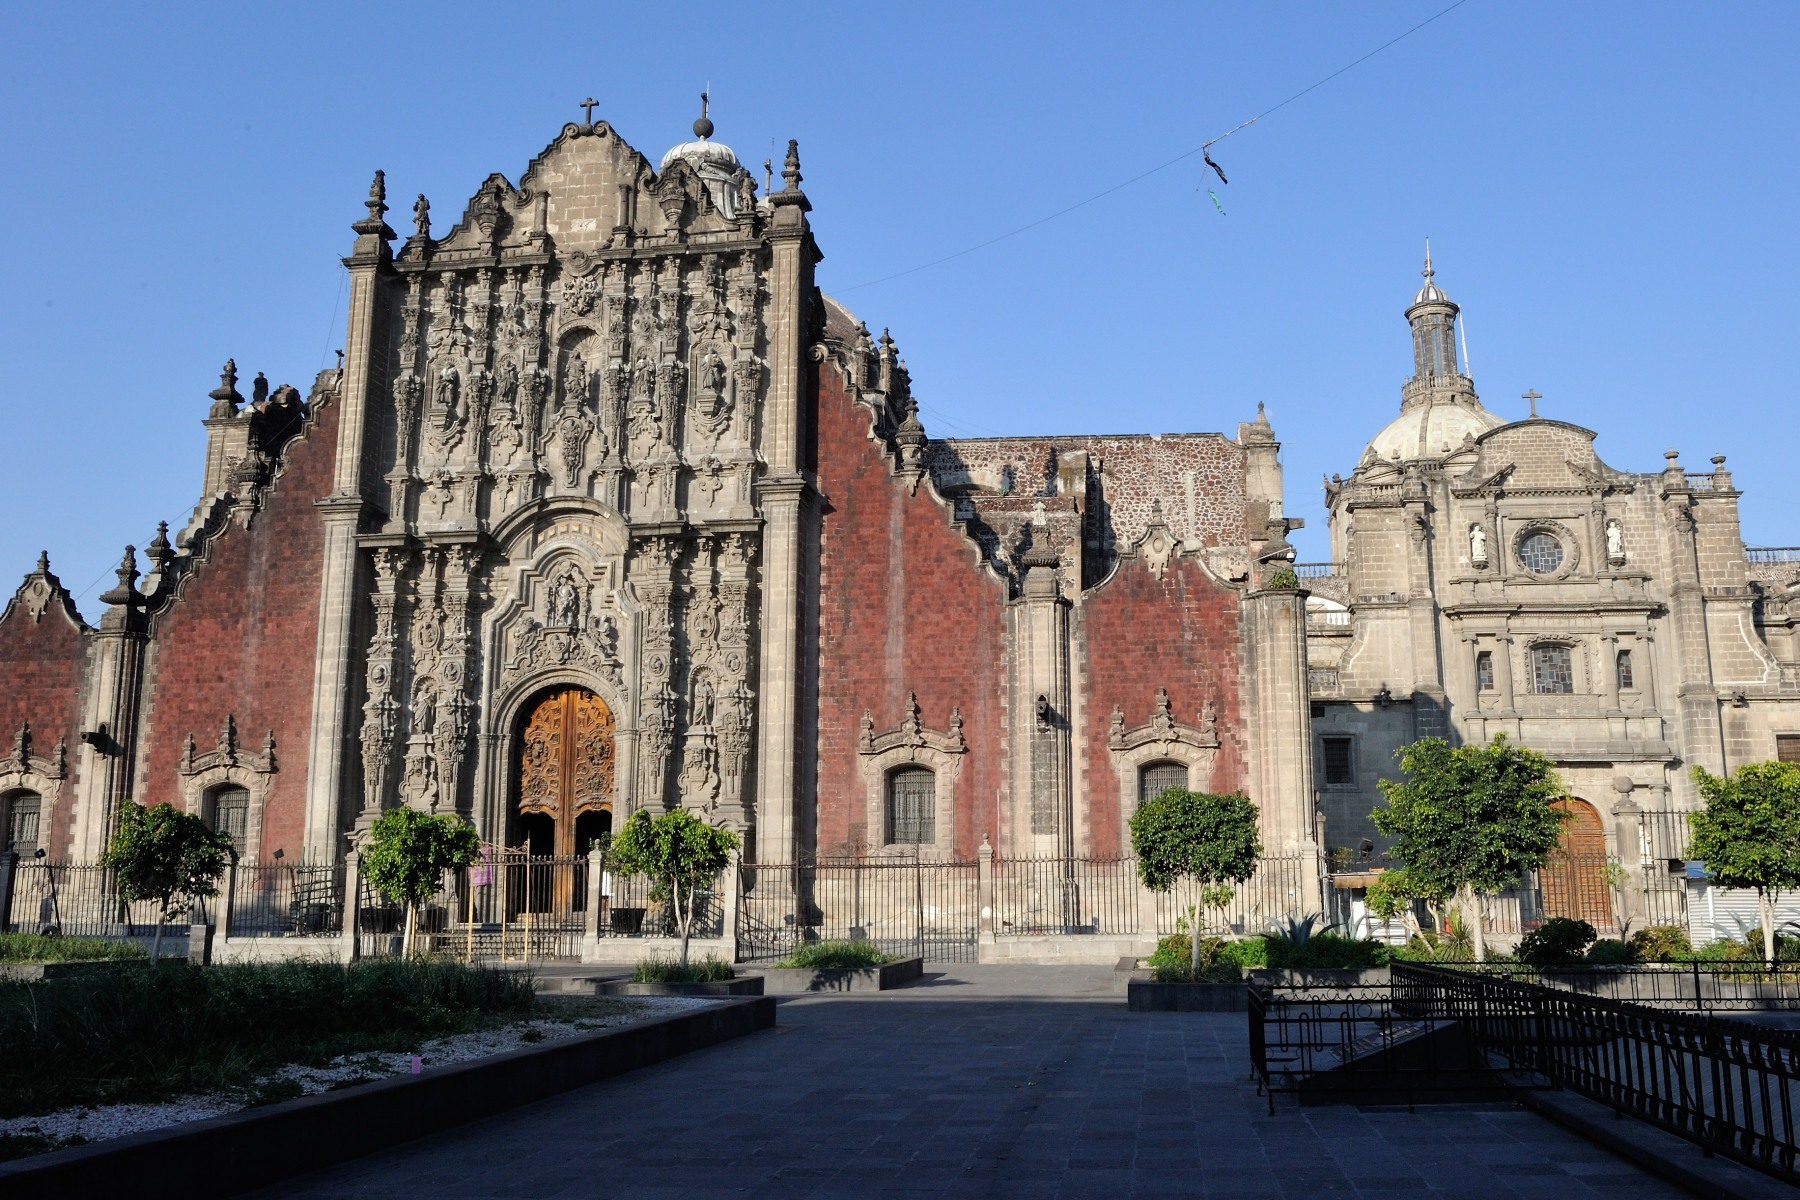 Their Excellencies and the delegation saw the Metropolitain Cathedral, the largest church in Latin America and home to numerous art treasures.